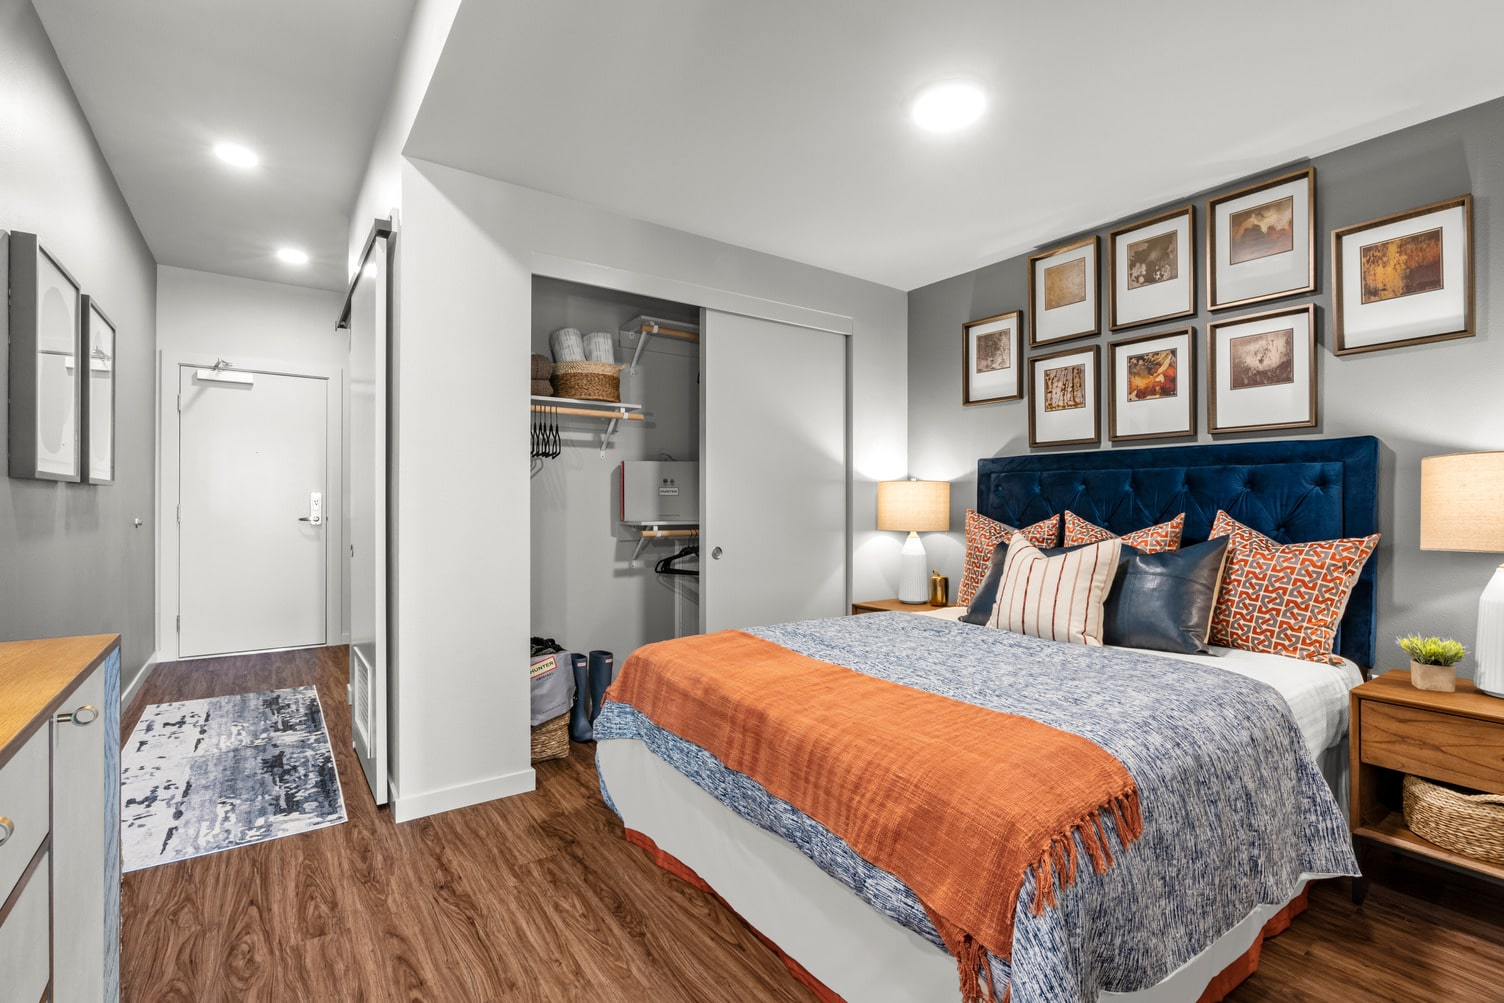 Furnished studio apartment bedroom area with wood flooring, sliding barn style door, and a closet.